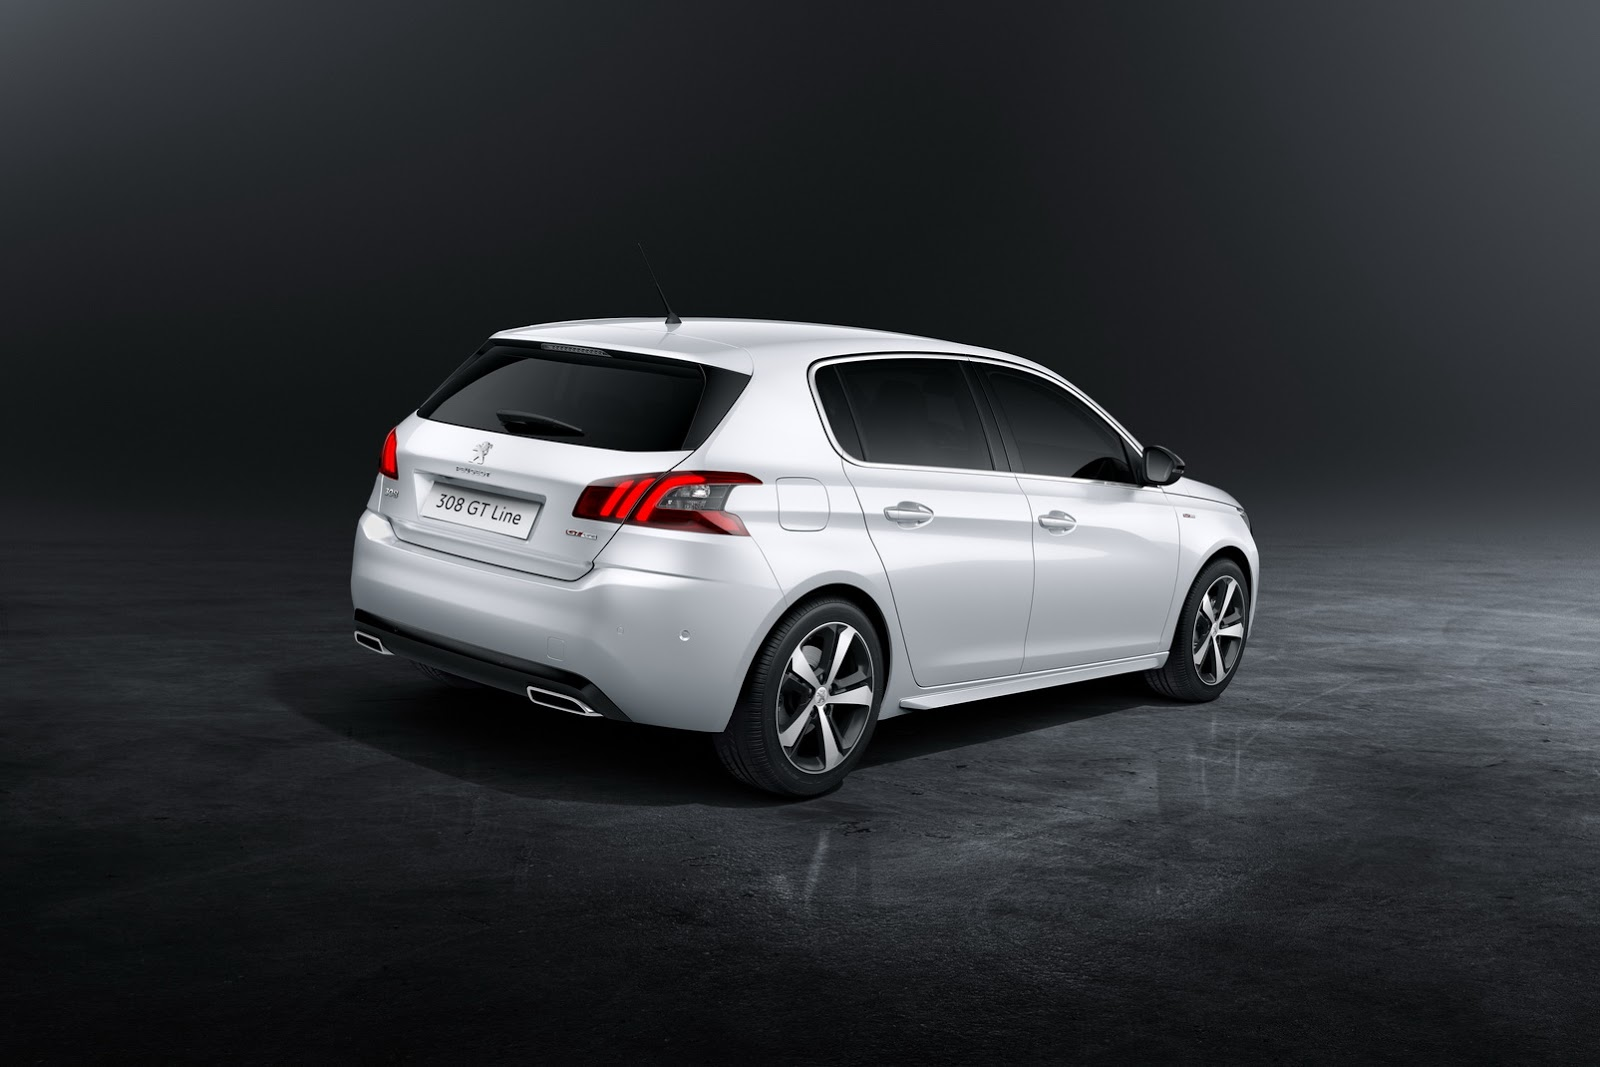 ... 2018 Peugeot 308 GTi Finally Shows Its Facelift in Detail ...